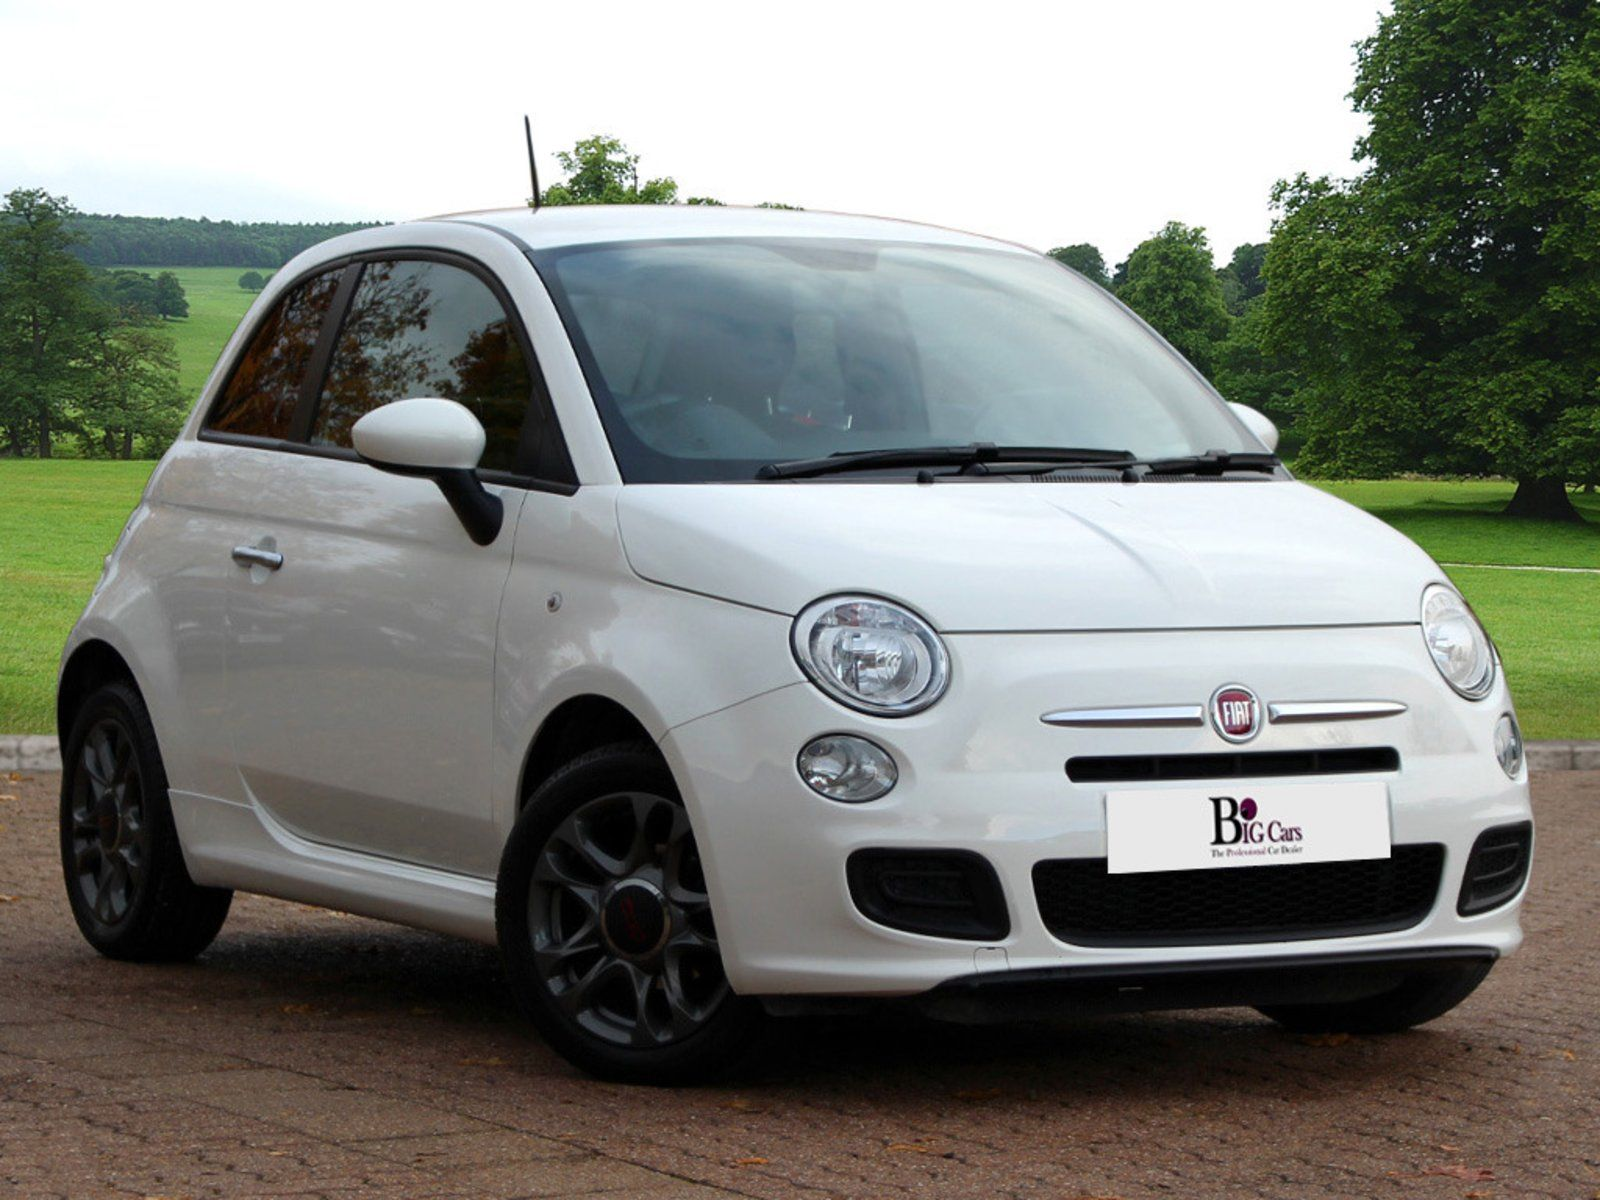 fiat 500 s price 6 950 was 7 450. Black Bedroom Furniture Sets. Home Design Ideas